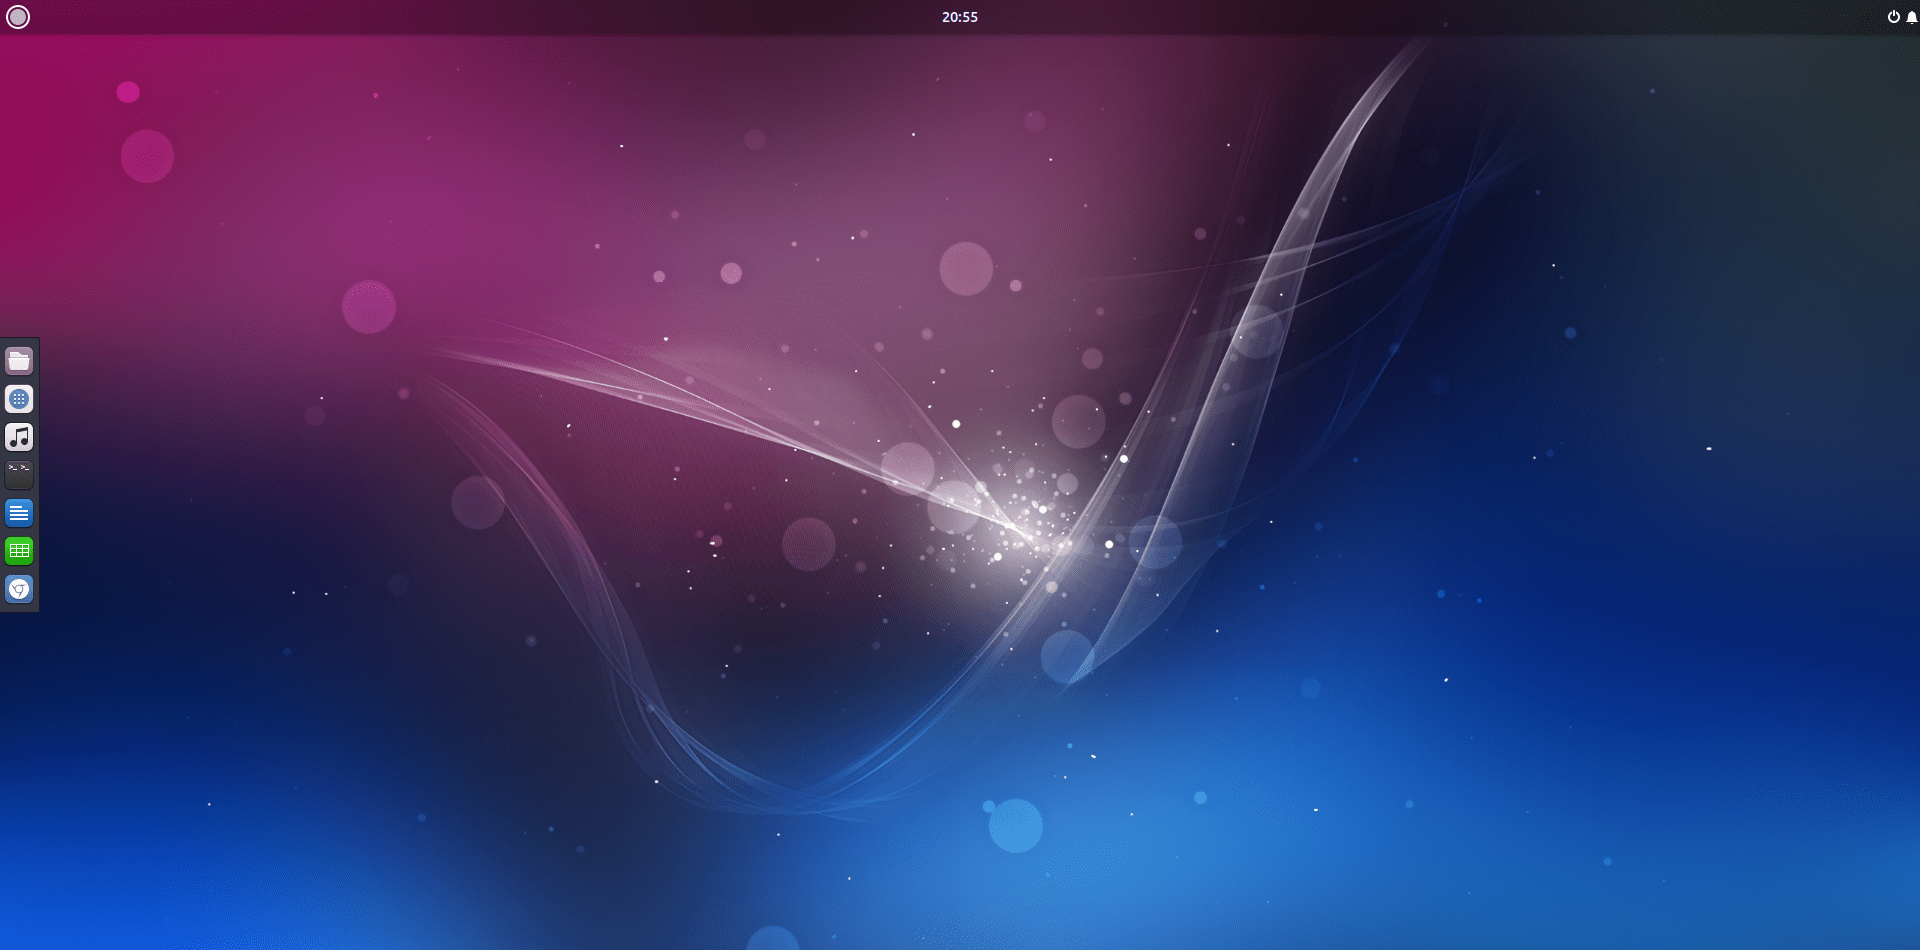 ubuntu budgie 18.04 screenshot 2.png